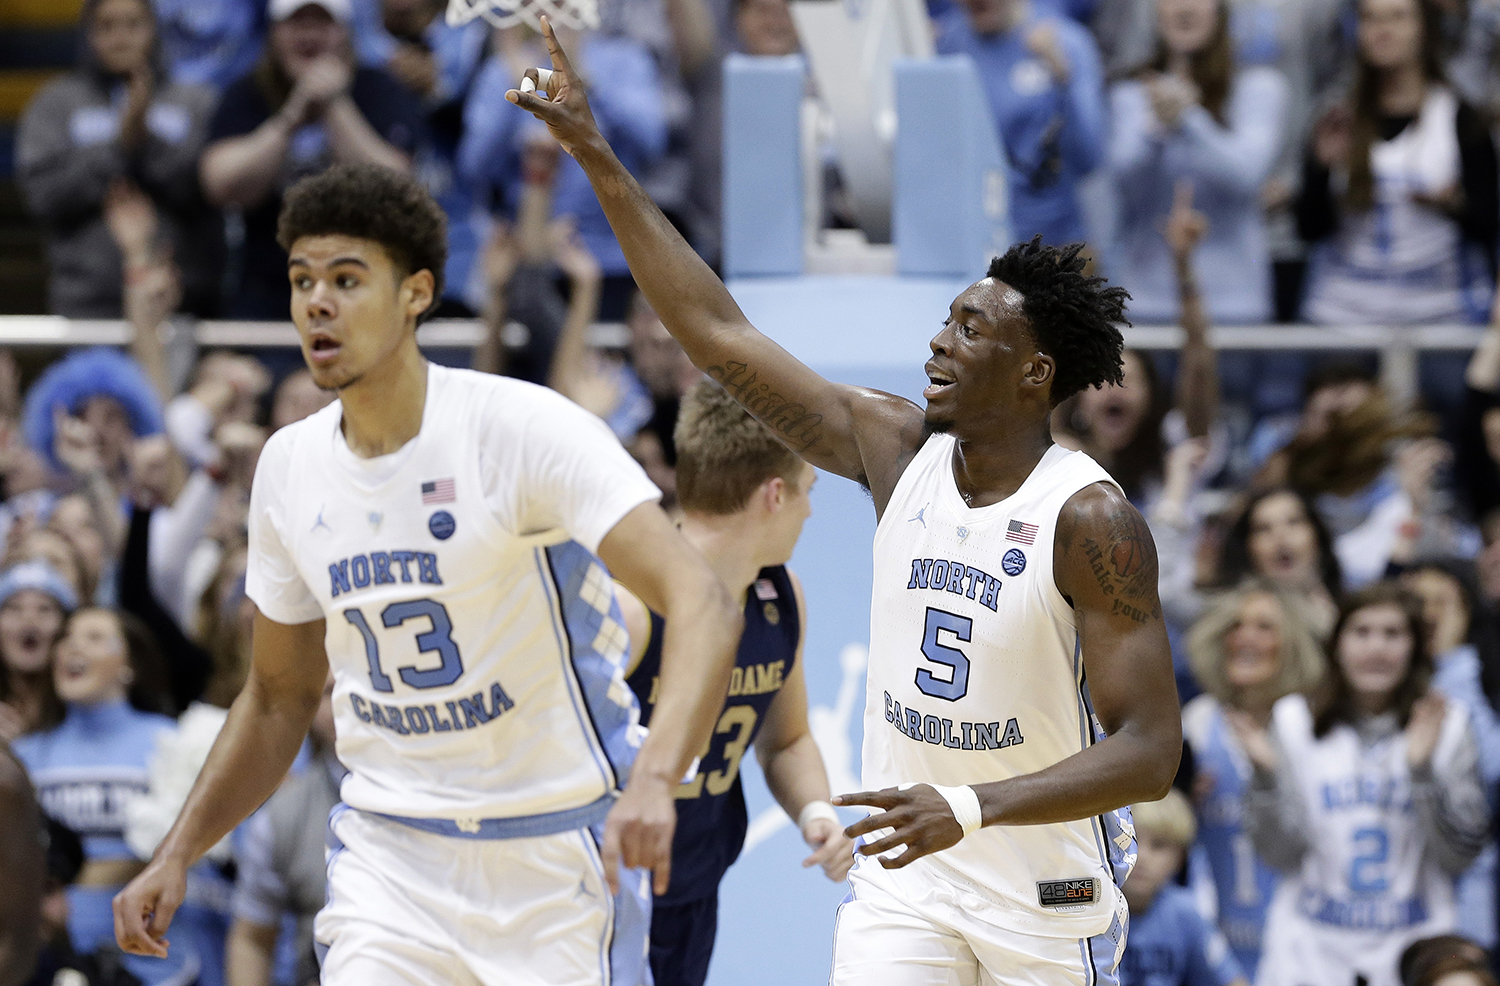 "<div class=""meta image-caption""><div class=""origin-logo origin-image ap""><span>AP</span></div><span class=""caption-text"">North Carolina's Nassir Little (5) celebrates a basket while running up the court. (Gerry Broome)</span></div>"